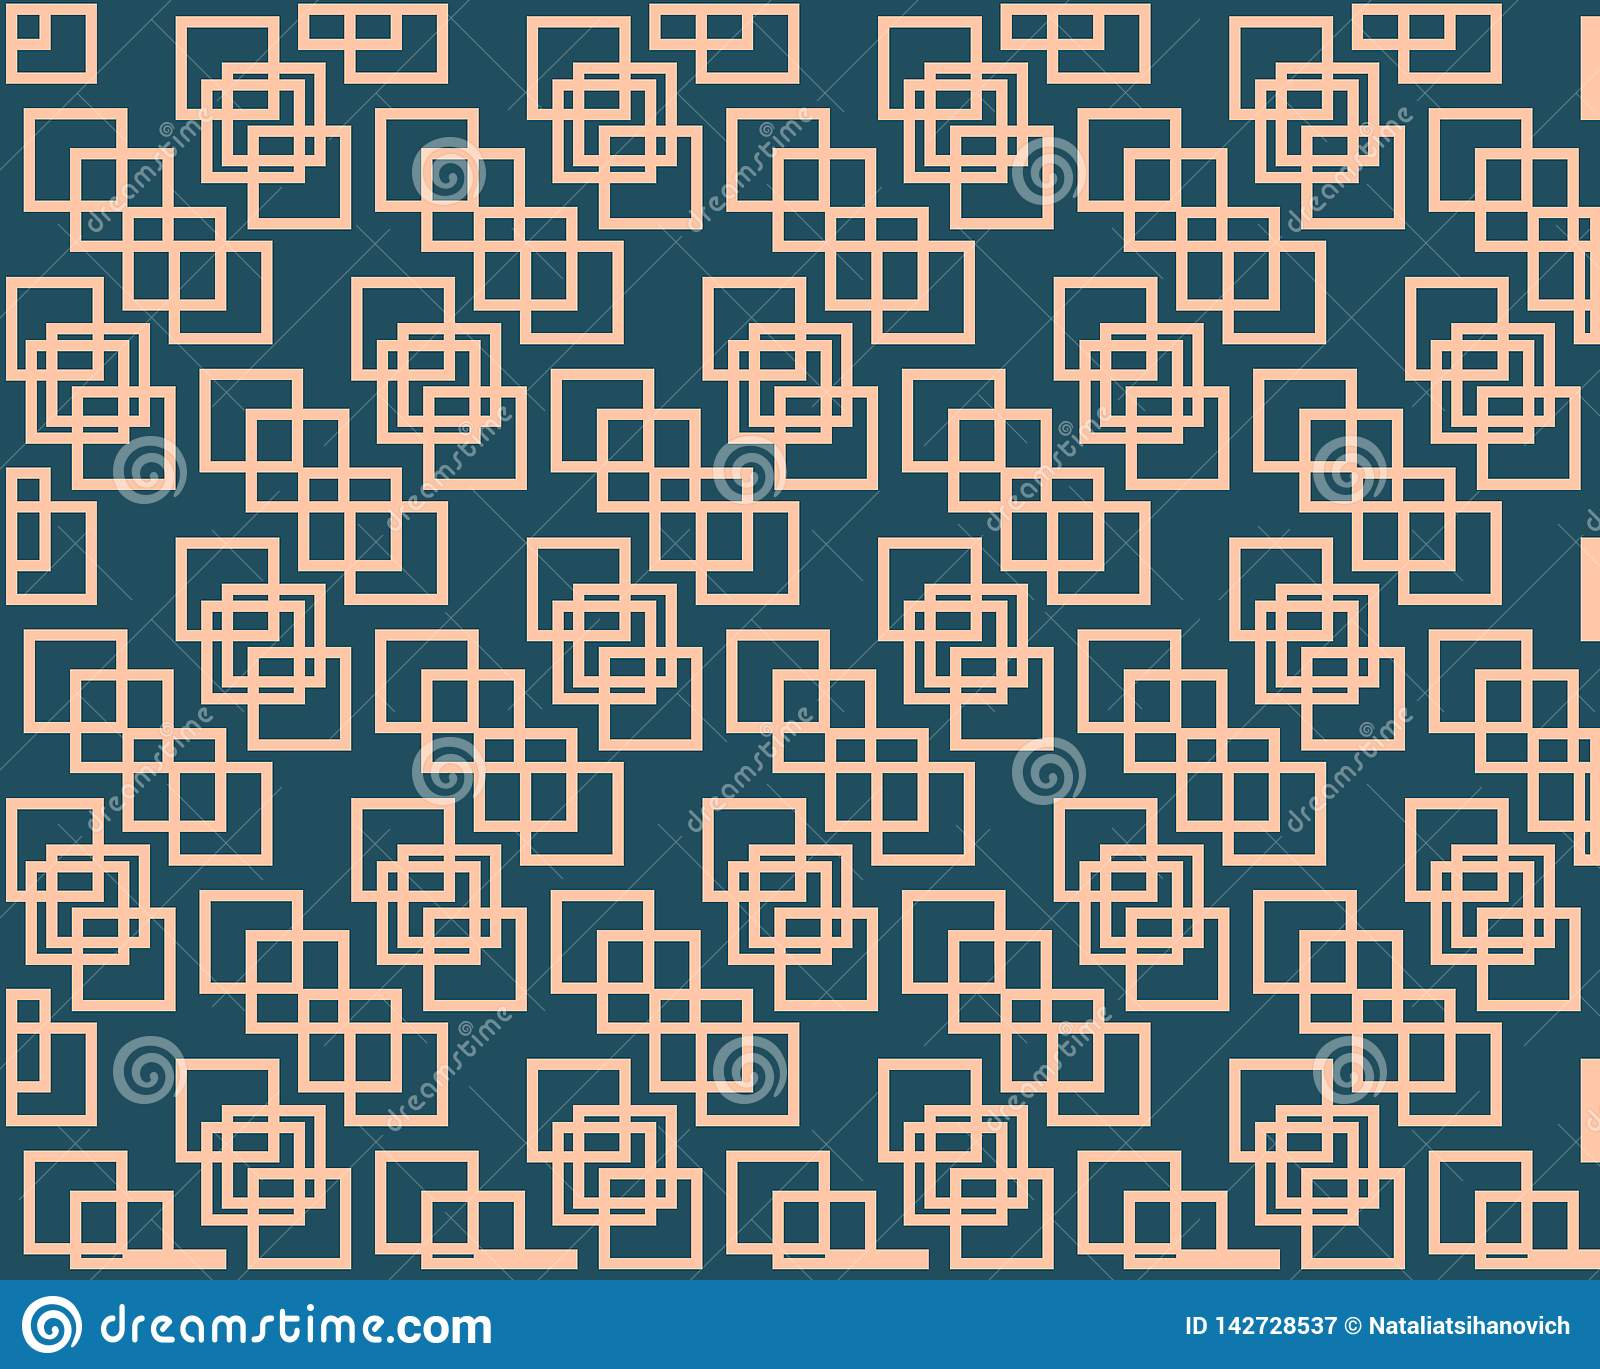 Beige squares are intertwined against a dark background, symmetrical pattern. Beige mesh on dark background geometric pattern design element, print for printing royalty free stock photography